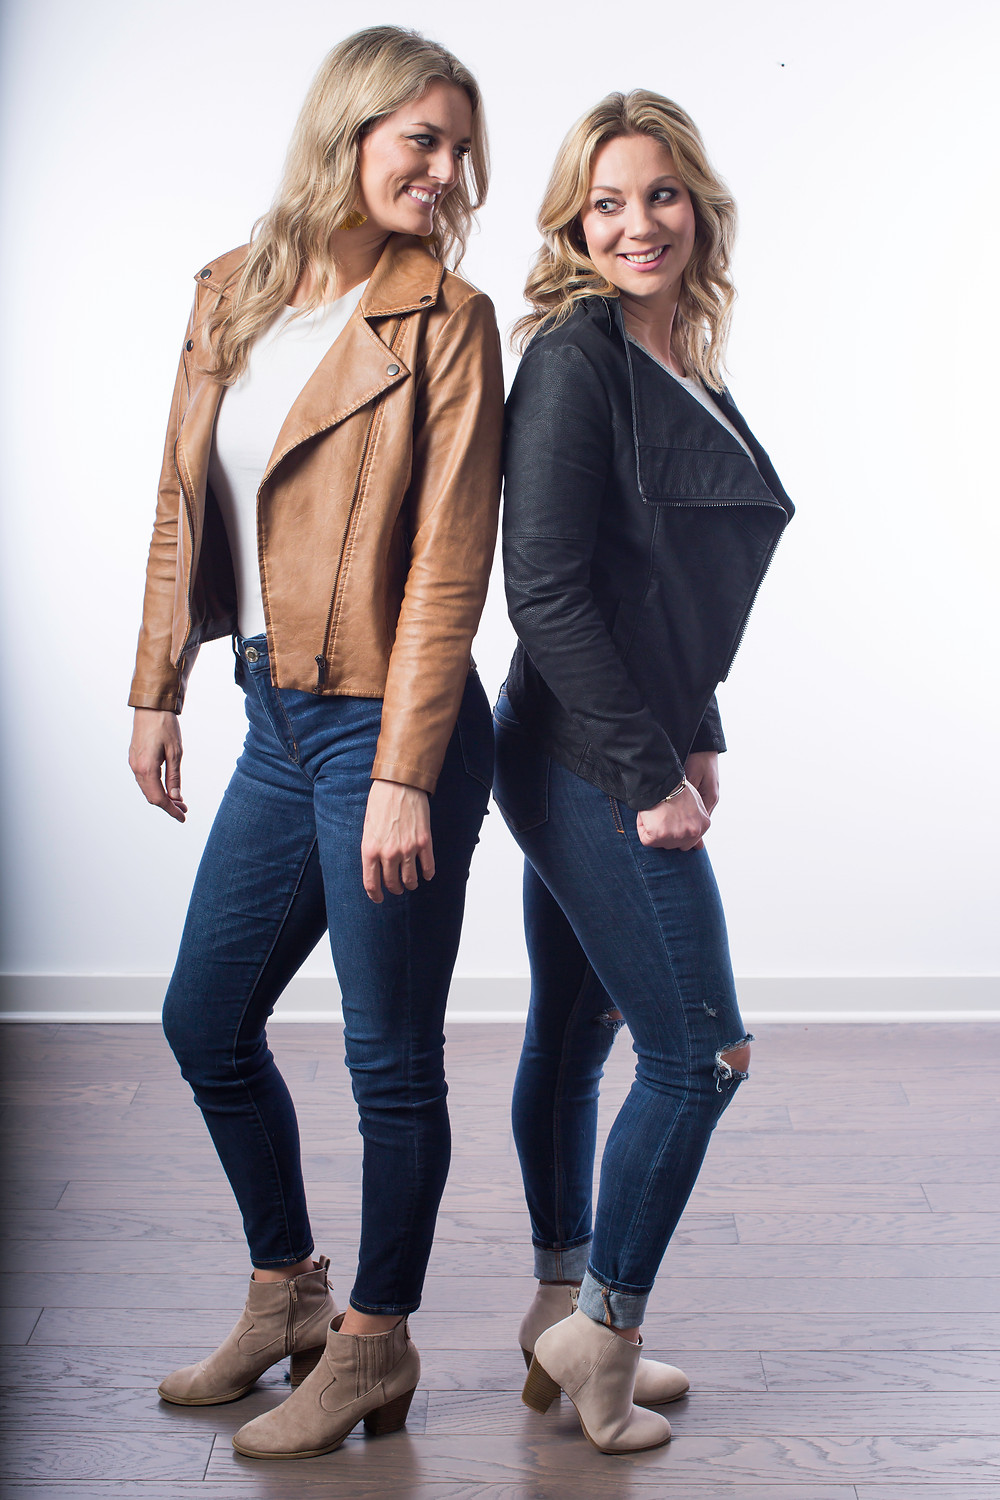 Two women standing back to back and looking toward each other.  One woman is wearing a brown leather jacket and jeans.  The other woman is wearing a black leather jacket and distressed jeans.